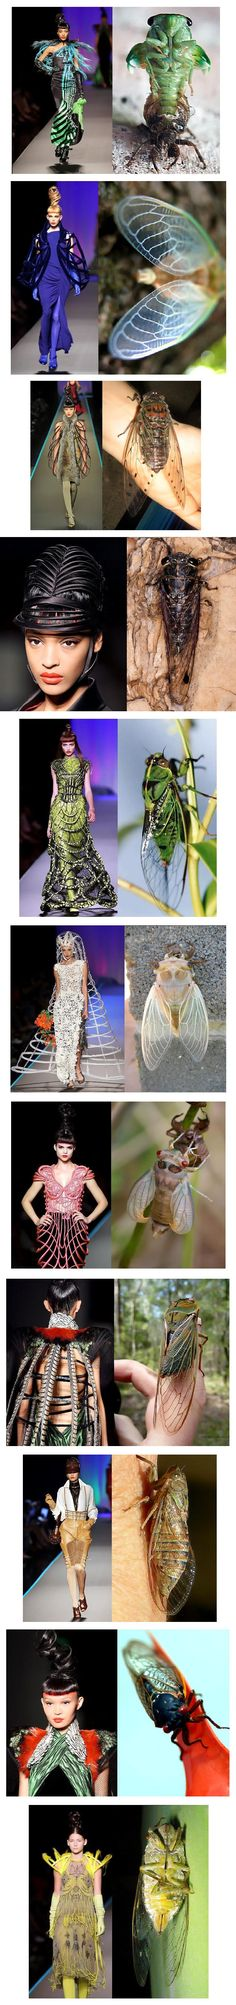 cool Jean Paul Gaultier | Metamorphosis 2014 | senatus.net/......